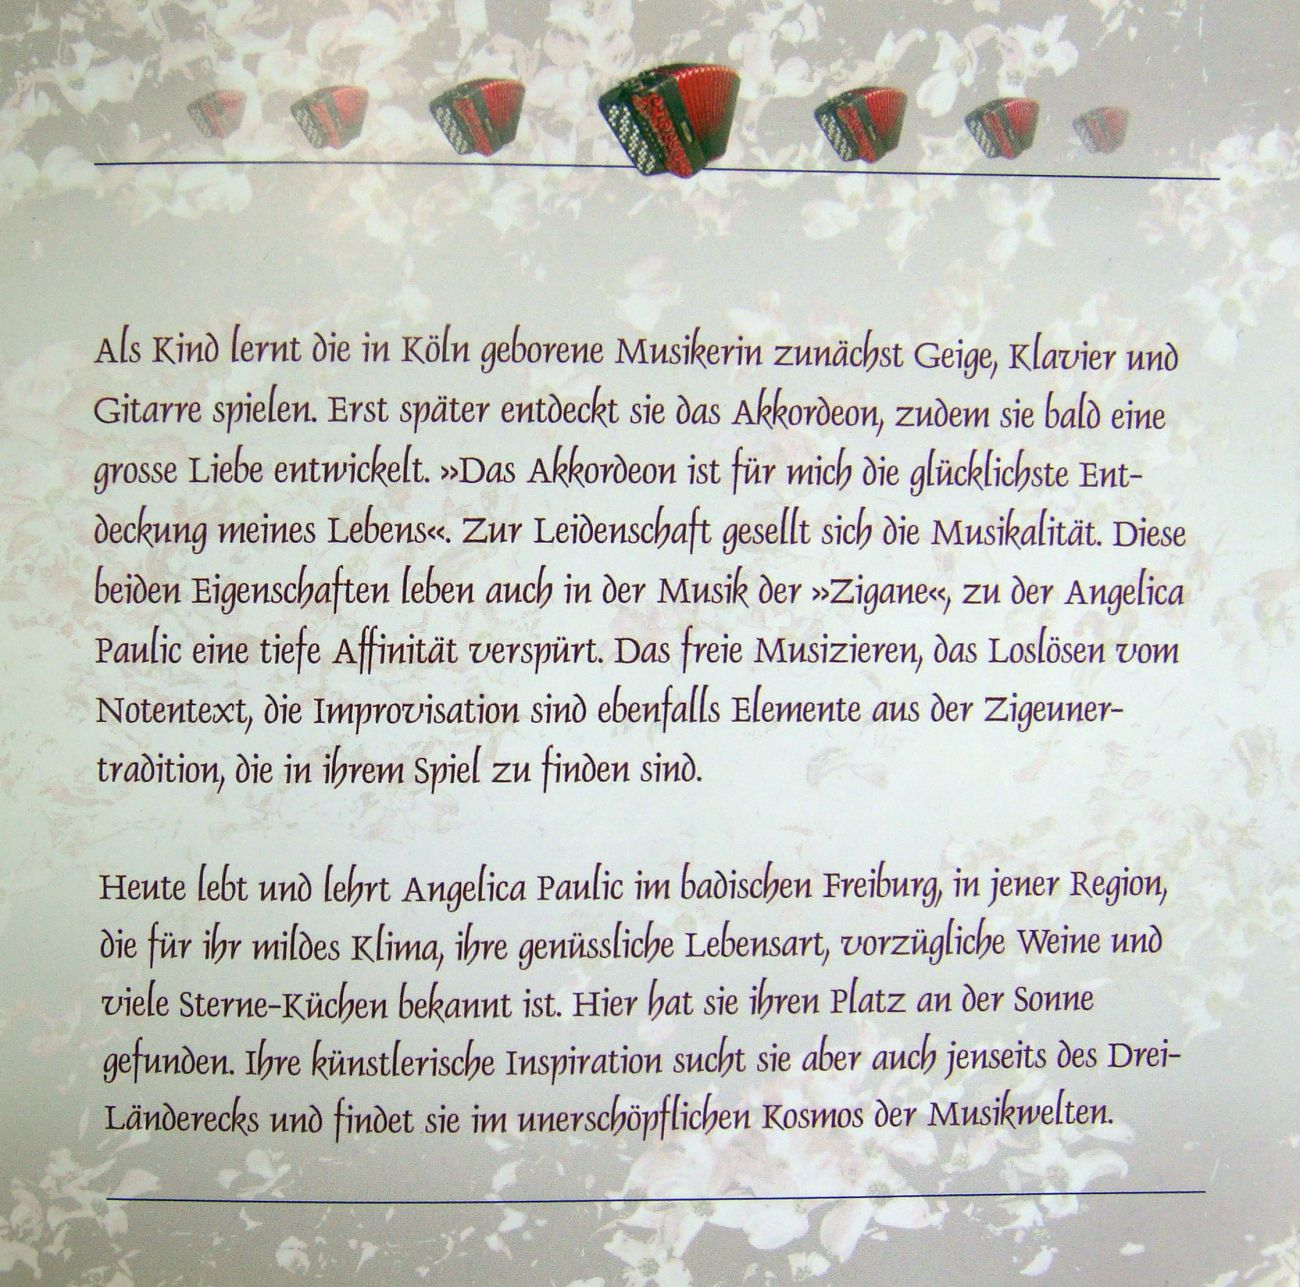 4 Akkordeon Audio CD Angelica Paulic.JPG